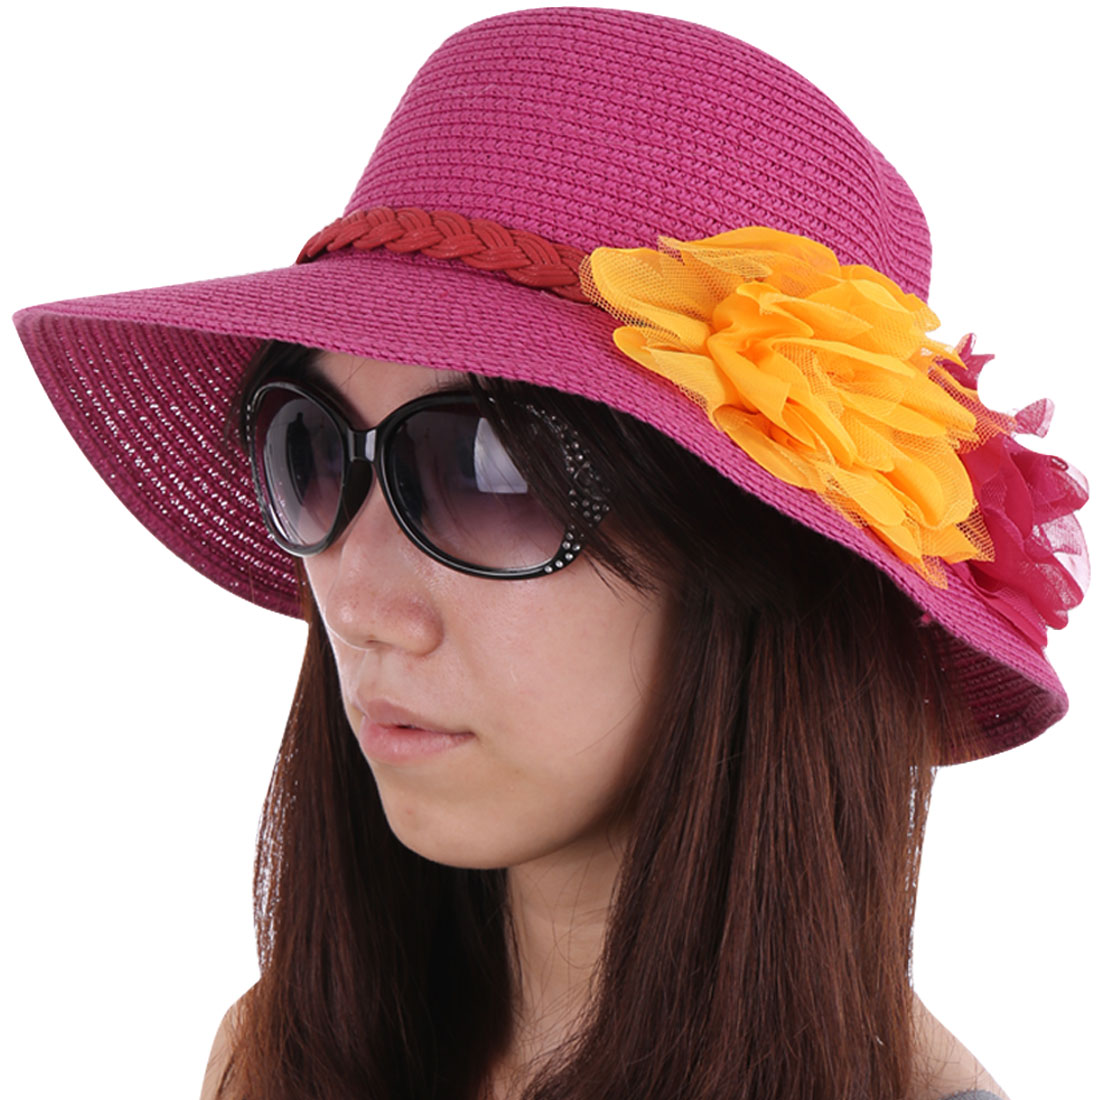 Stylish Manmade Flowers Embellished Red Color Sun Hat for Woman